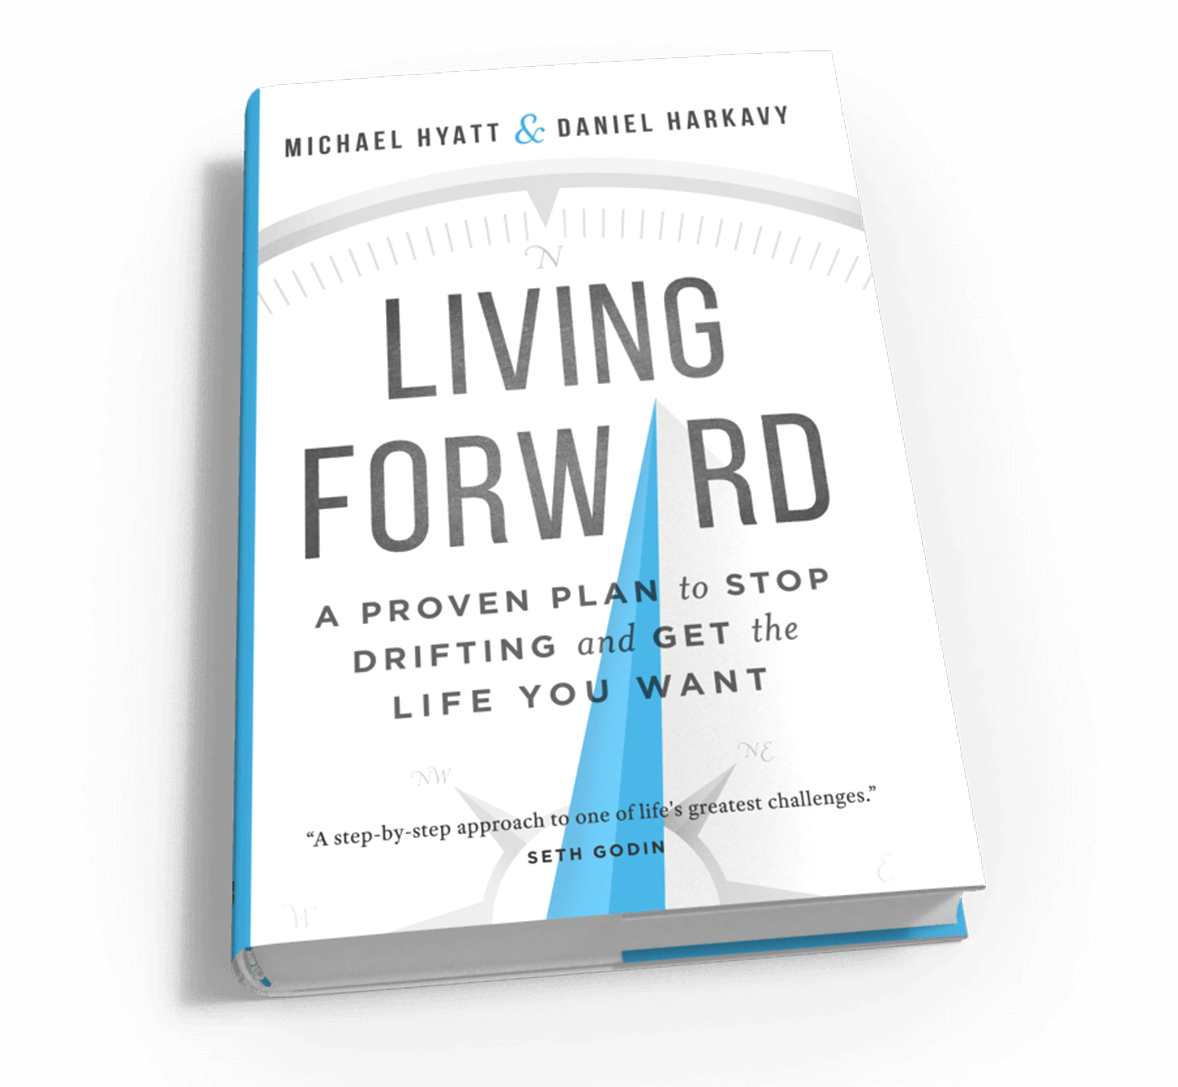 Living Forward A Proven Plan To Stop Drifting And Get The Life You